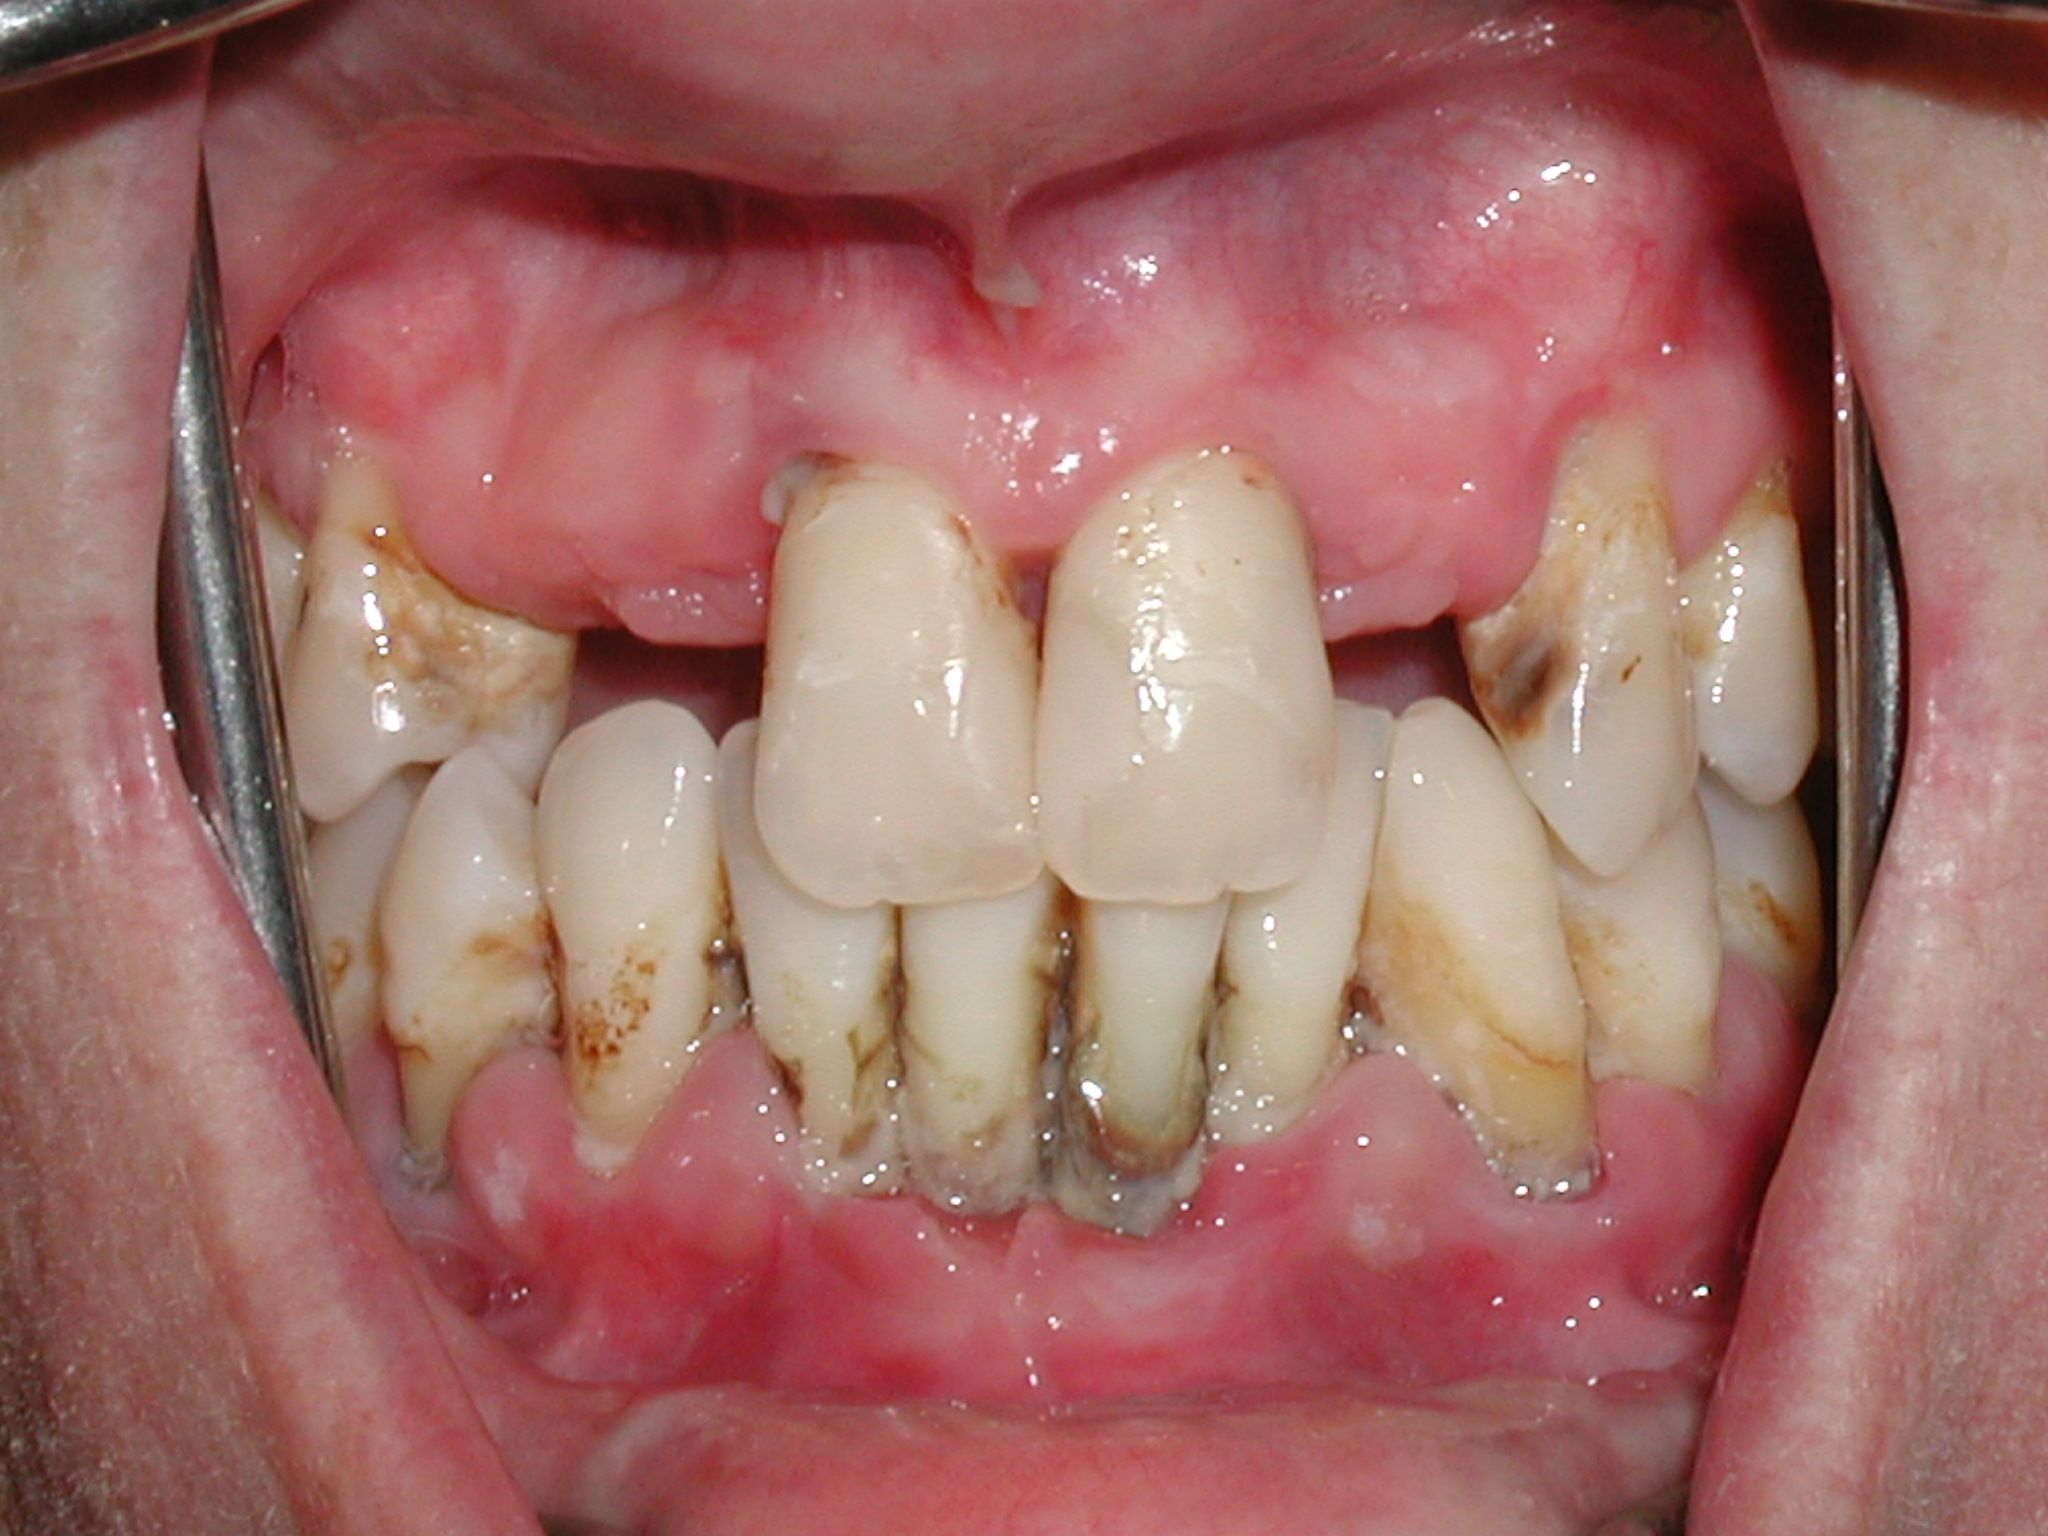 Periodontal Disease Archives - Periodical Dental Disease  Periodontal Dis...